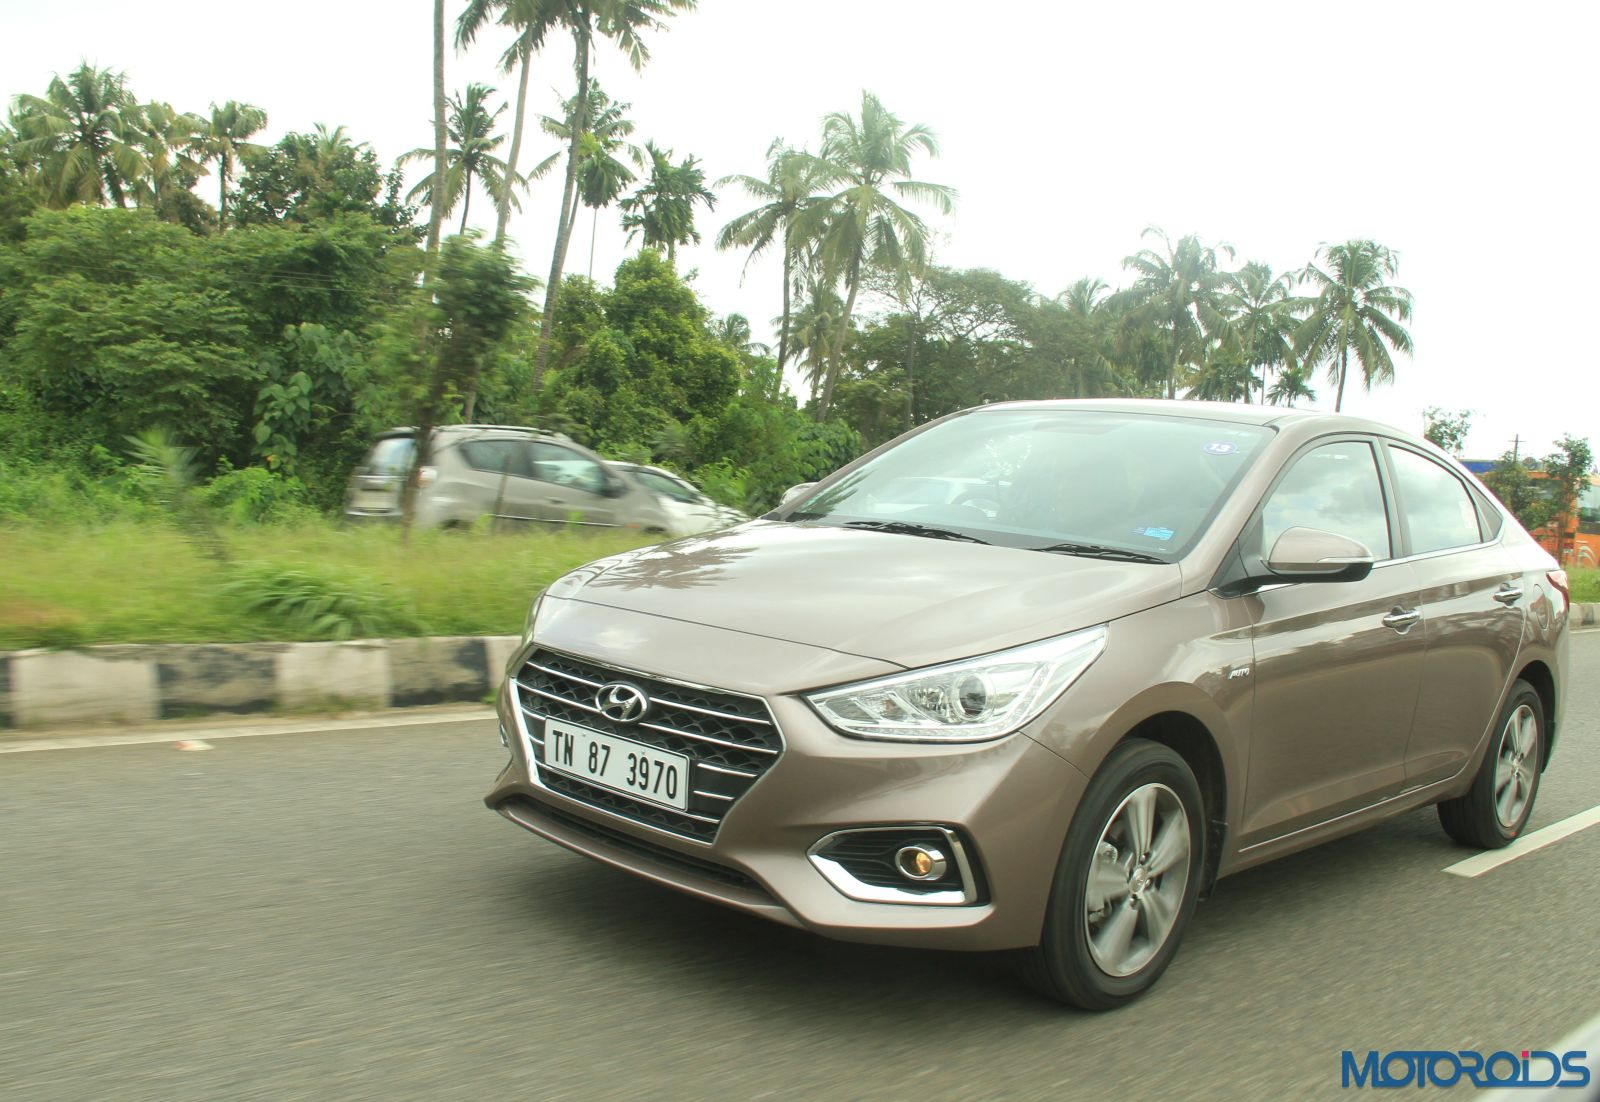 August 28, 2017-New-2017-Next-gen-Hyundai-Verna-motion-shots-brown-2.jpg